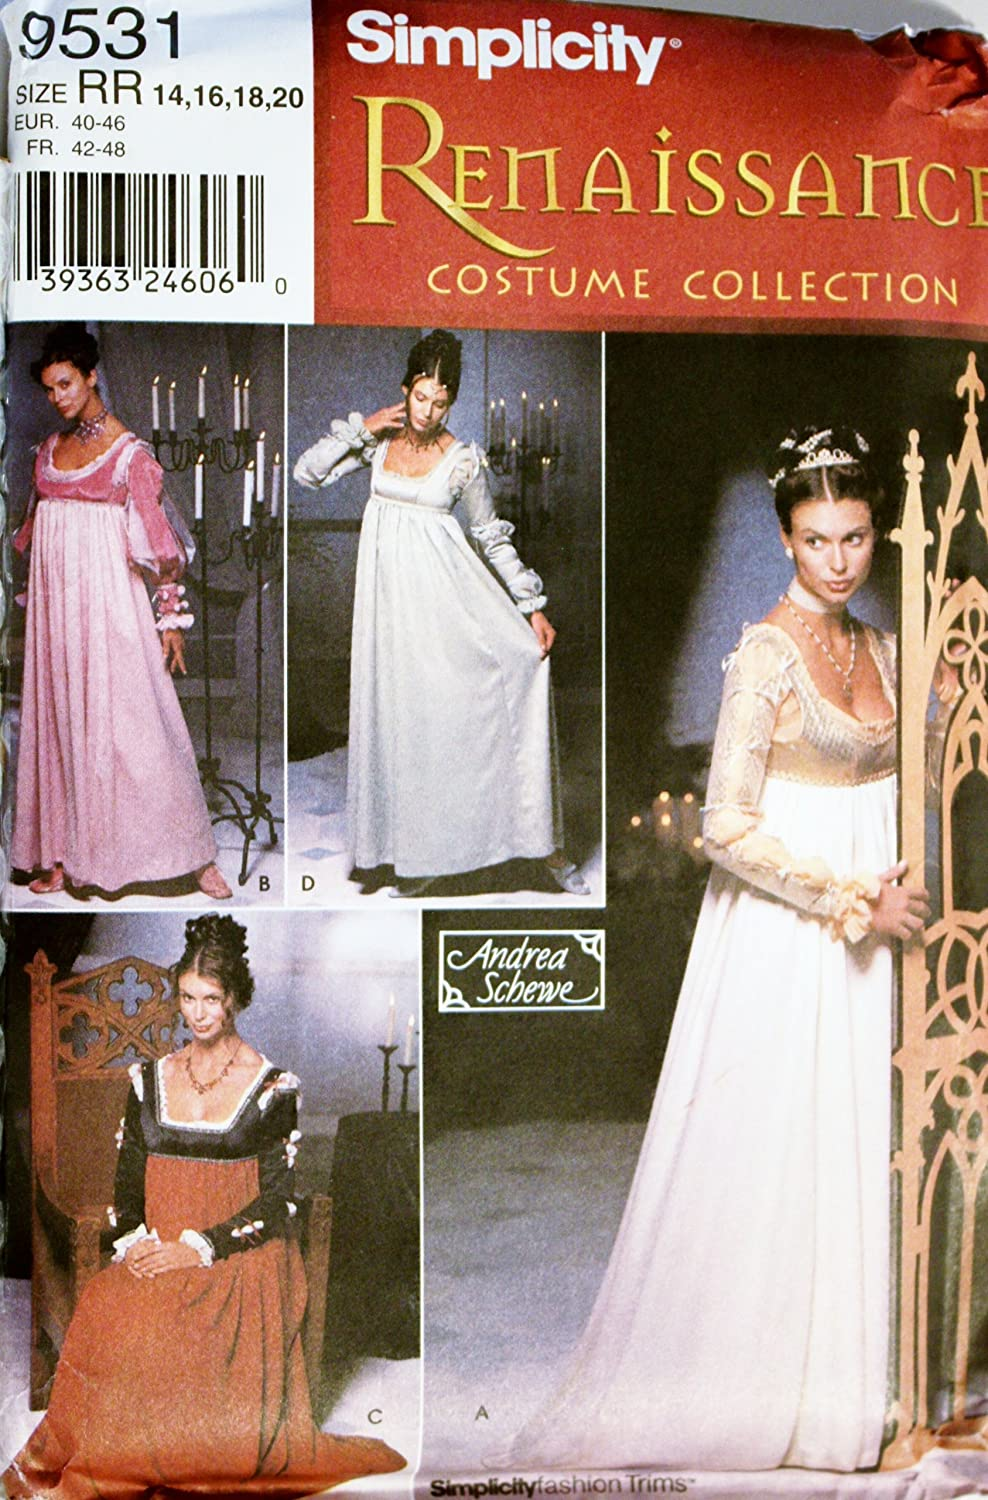 21ab77841e3 Amazon.com  SIMPLICITY PATTERN 9531 RENAISSANCE COSTUME COLLECTION SIZE RR  14-20  Home   Kitchen